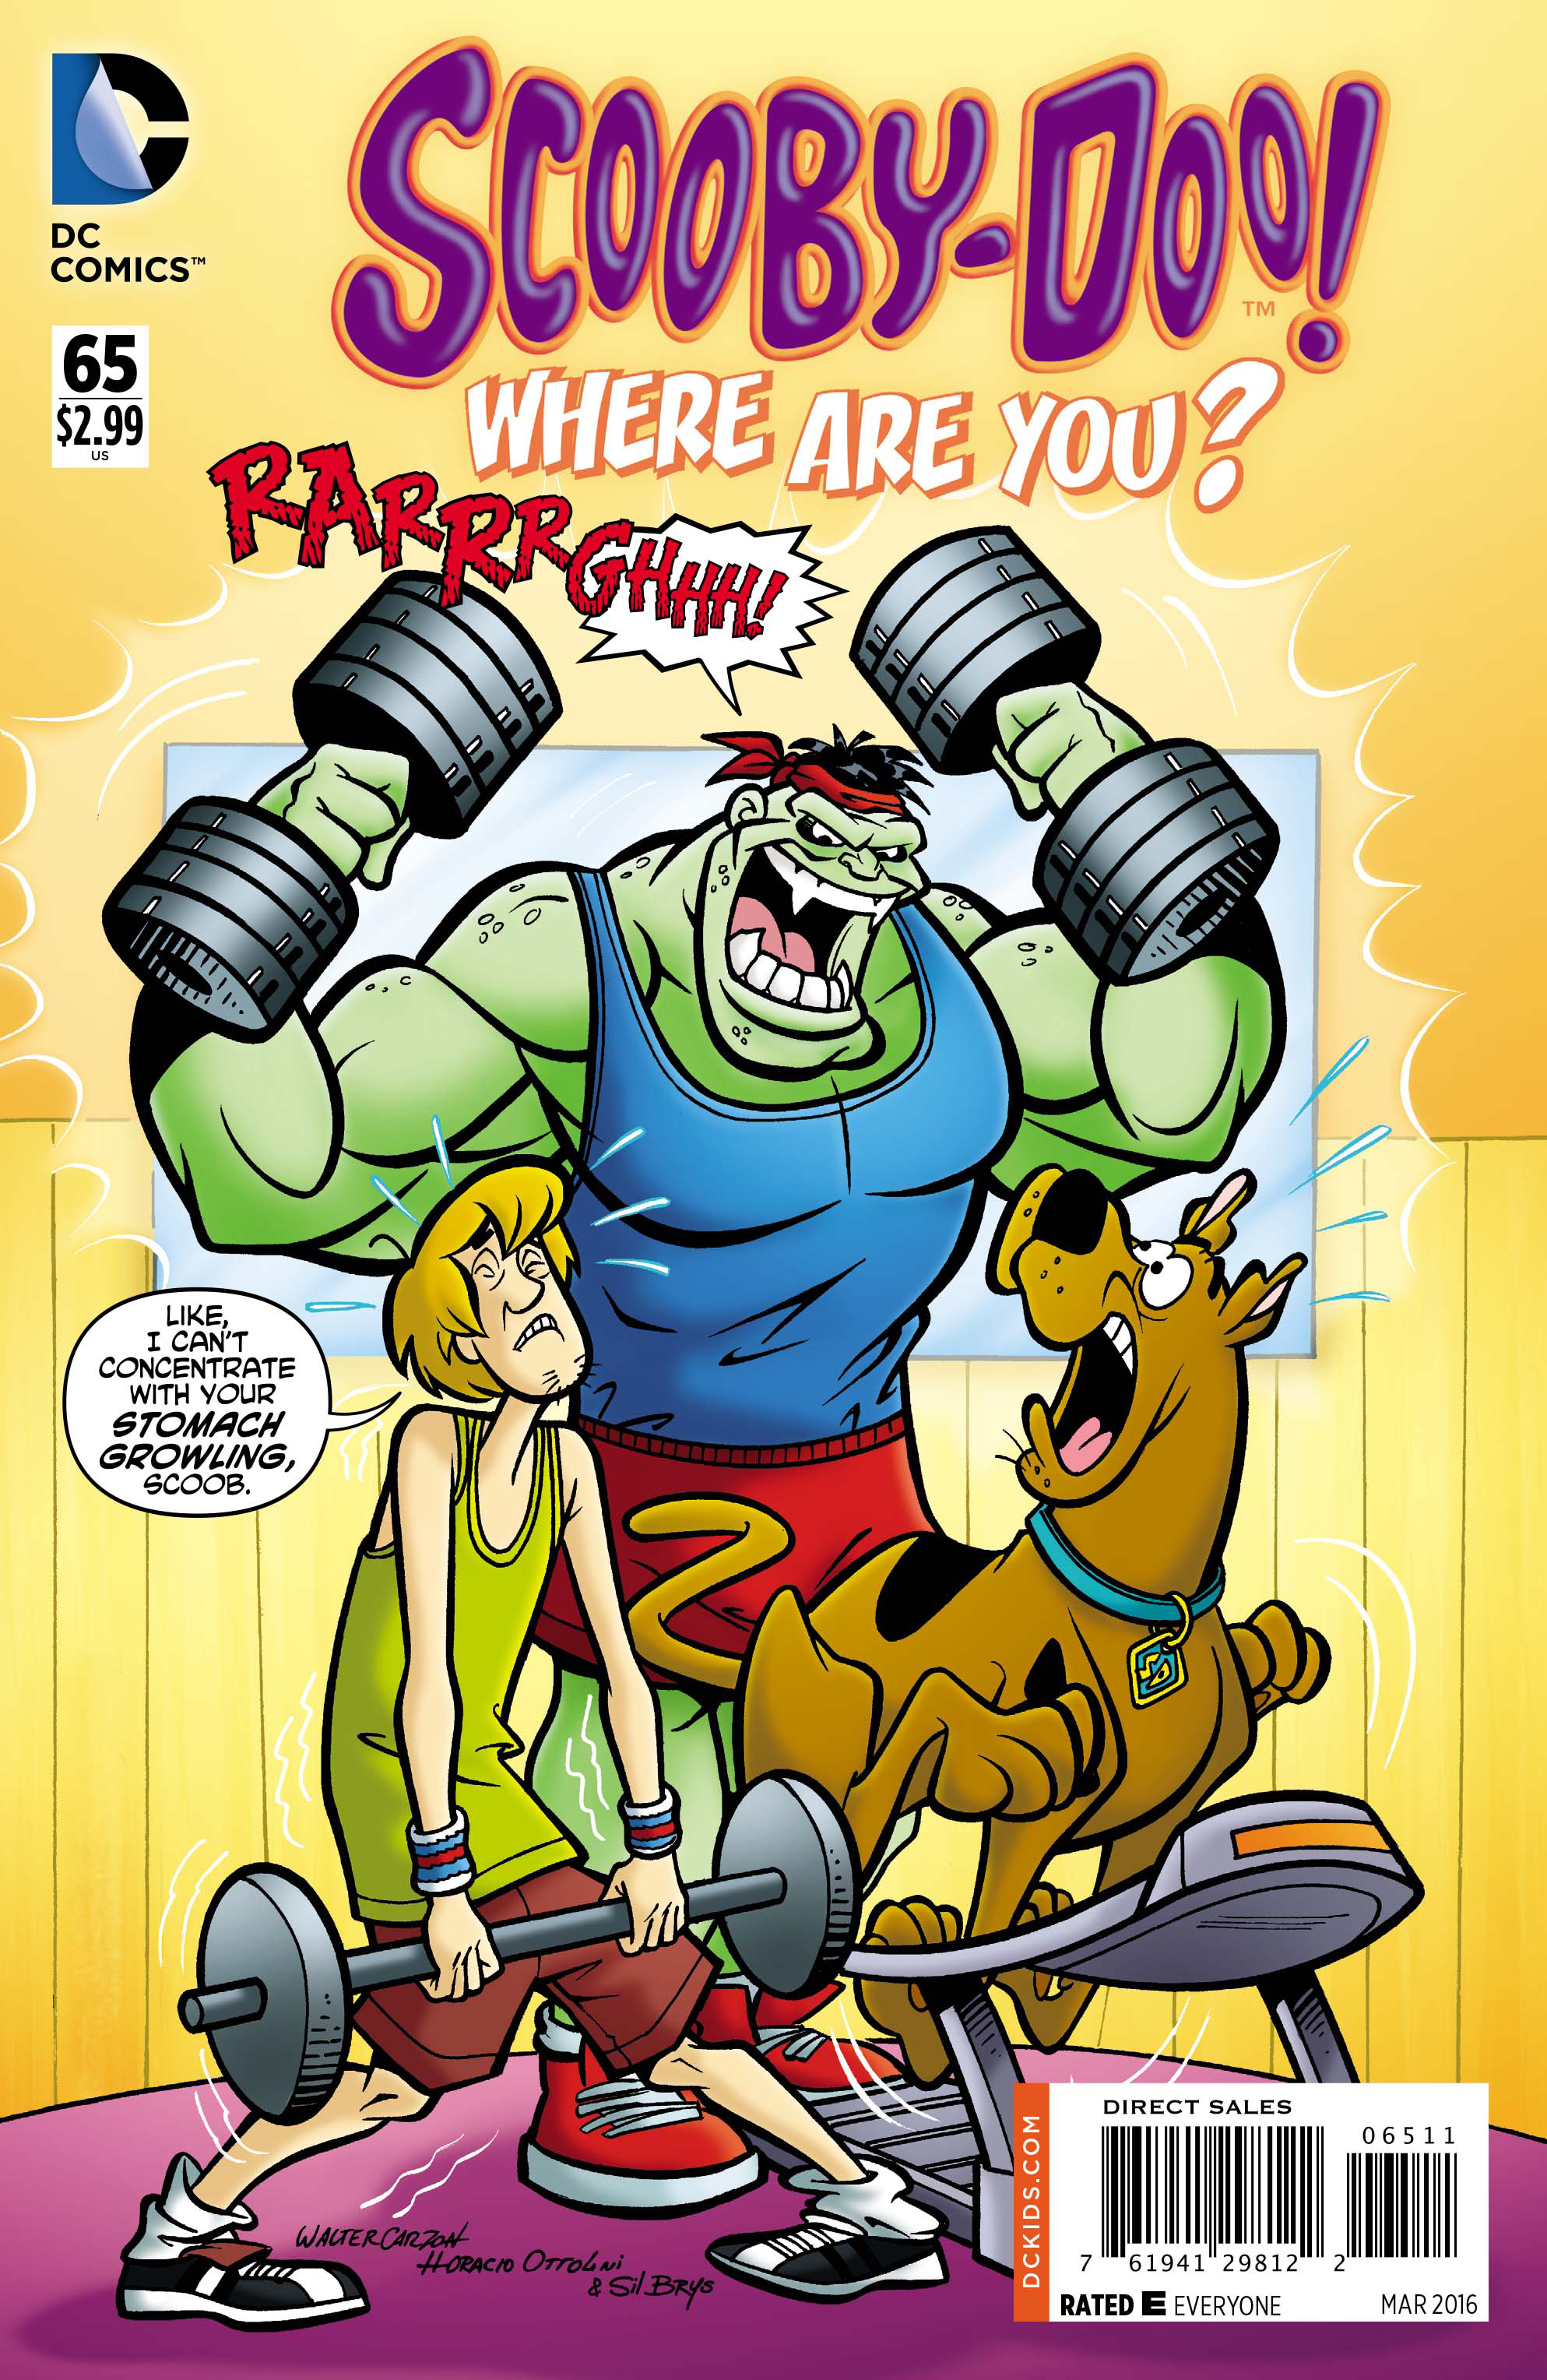 NOV150259 - SCOOBY DOO WHERE ARE YOU #65 - Previews World